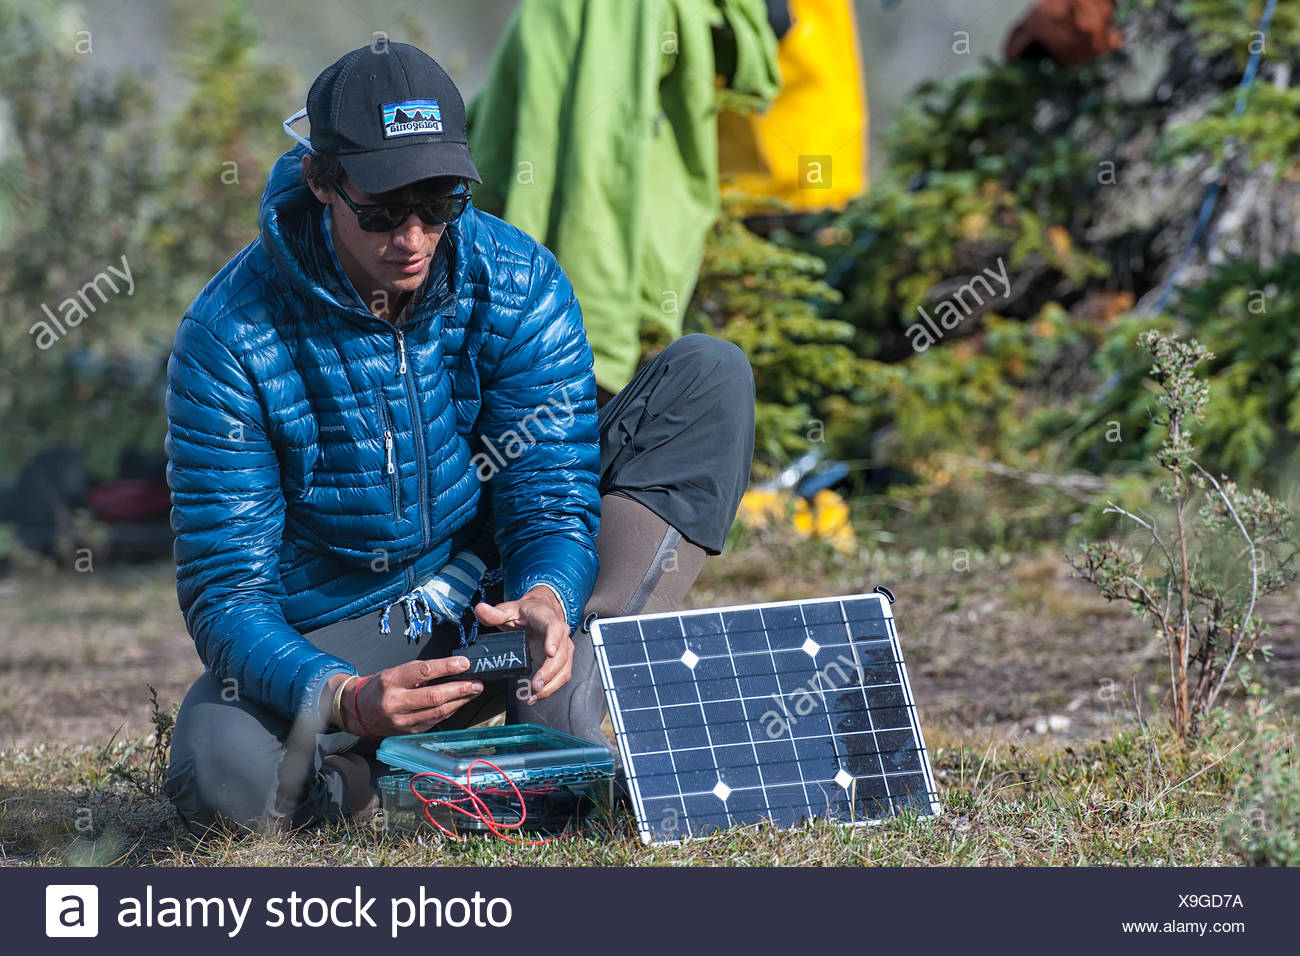 Videographer charging batteries using a solar charging system from our sponsors at Voltaic Systems. The solar charger was key equipment, every spare minute was spent charging batteries. - Stock Image